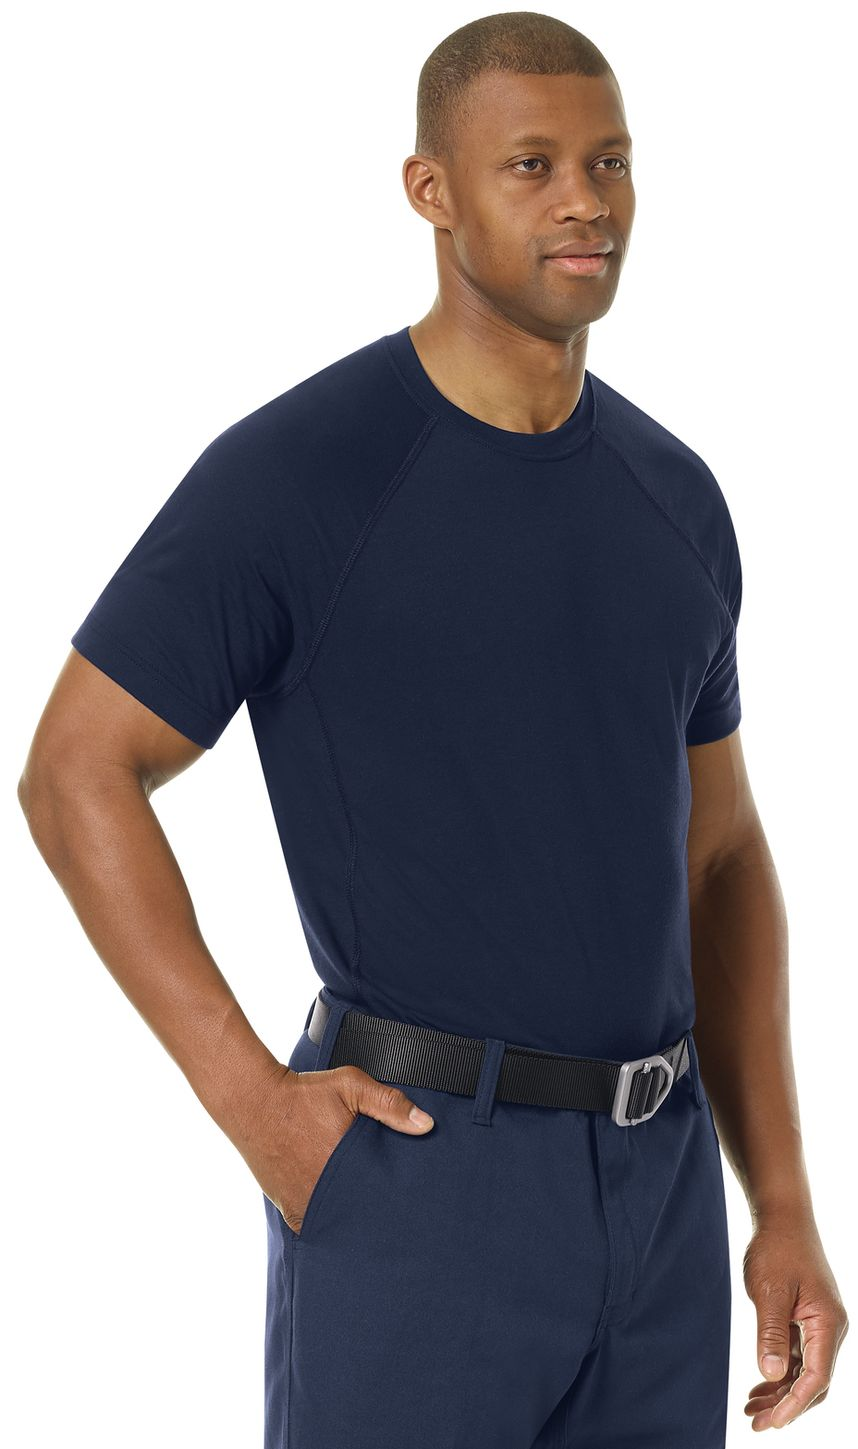 Workrite FR Station Wear Tee FT36, Base Layer, Athletic Style Navy Example Right